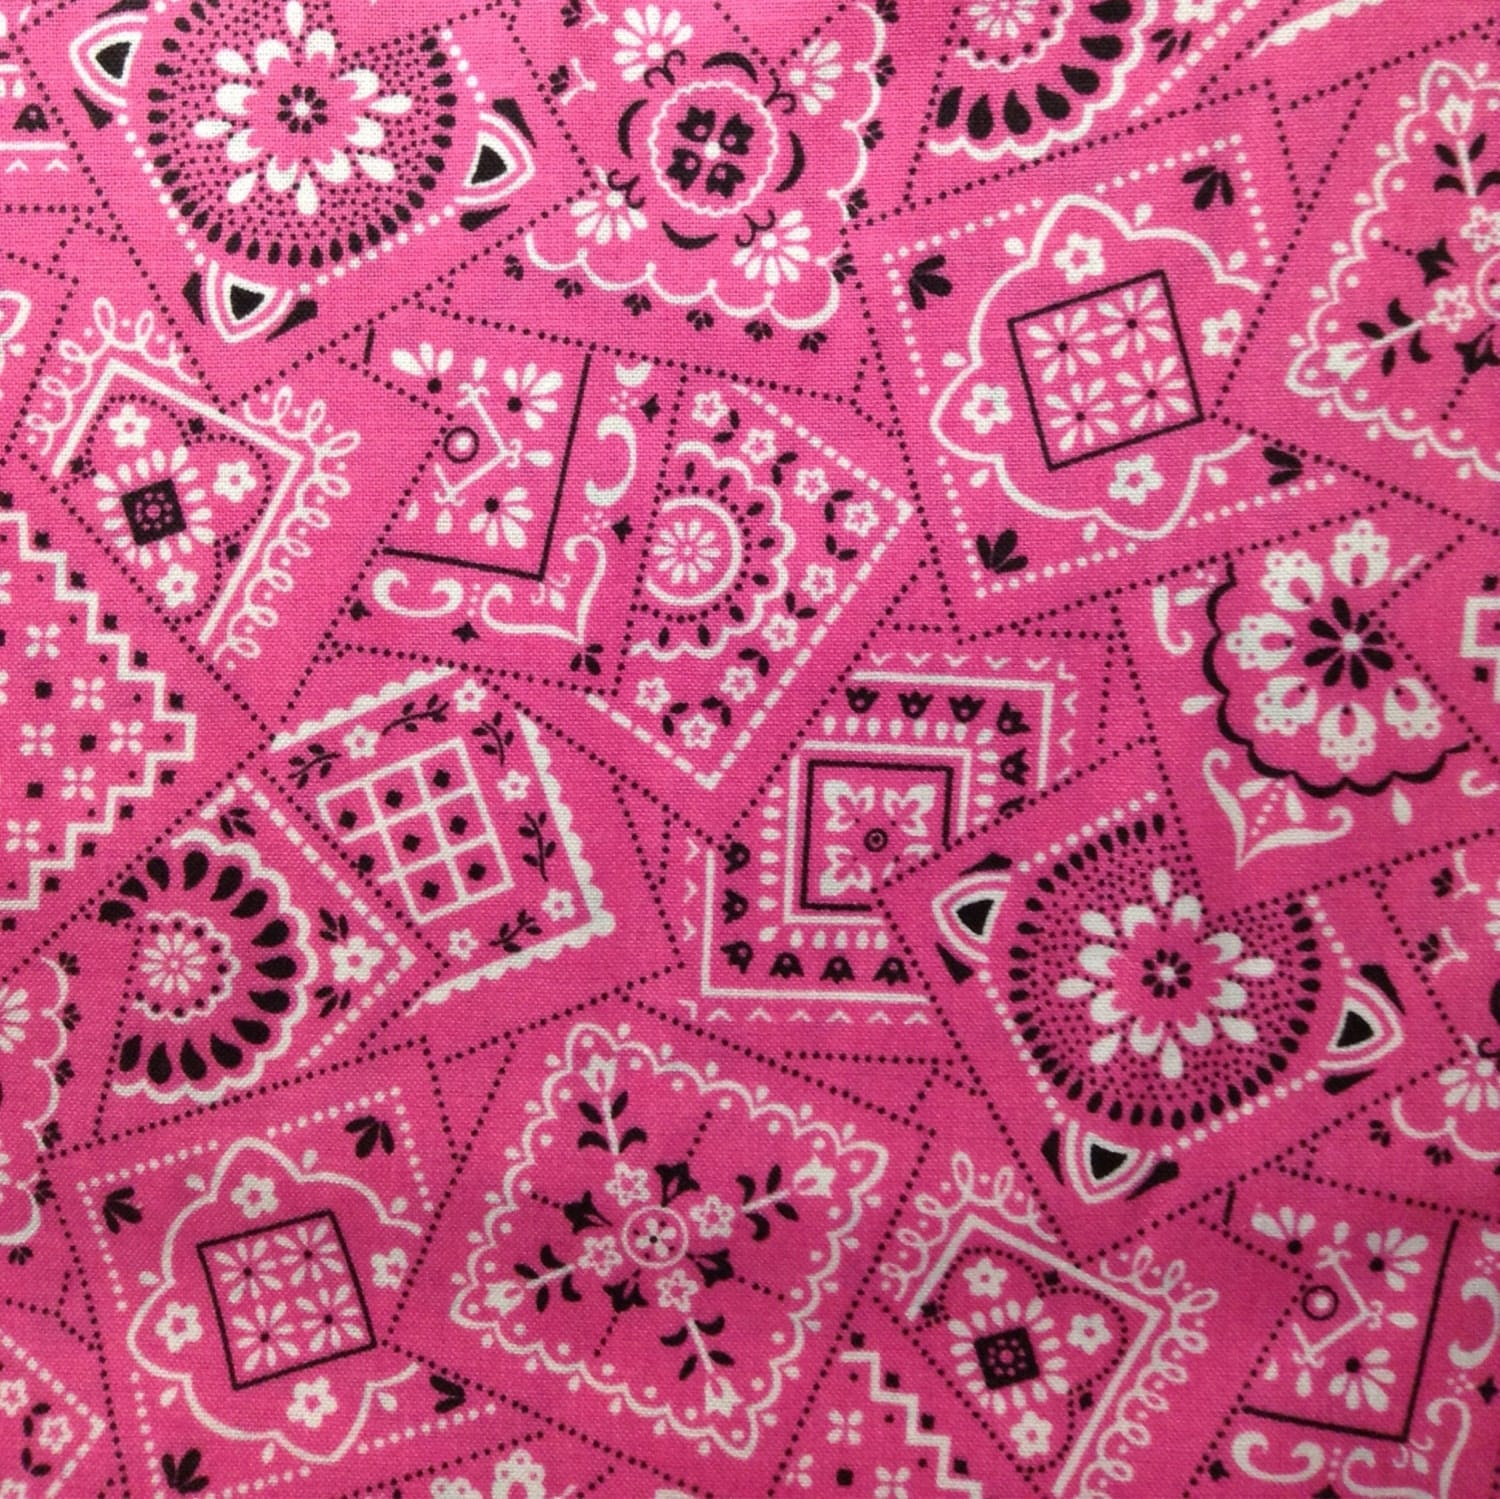 One Half Yard of Fabric Material Hot Pink by CraftingFabric